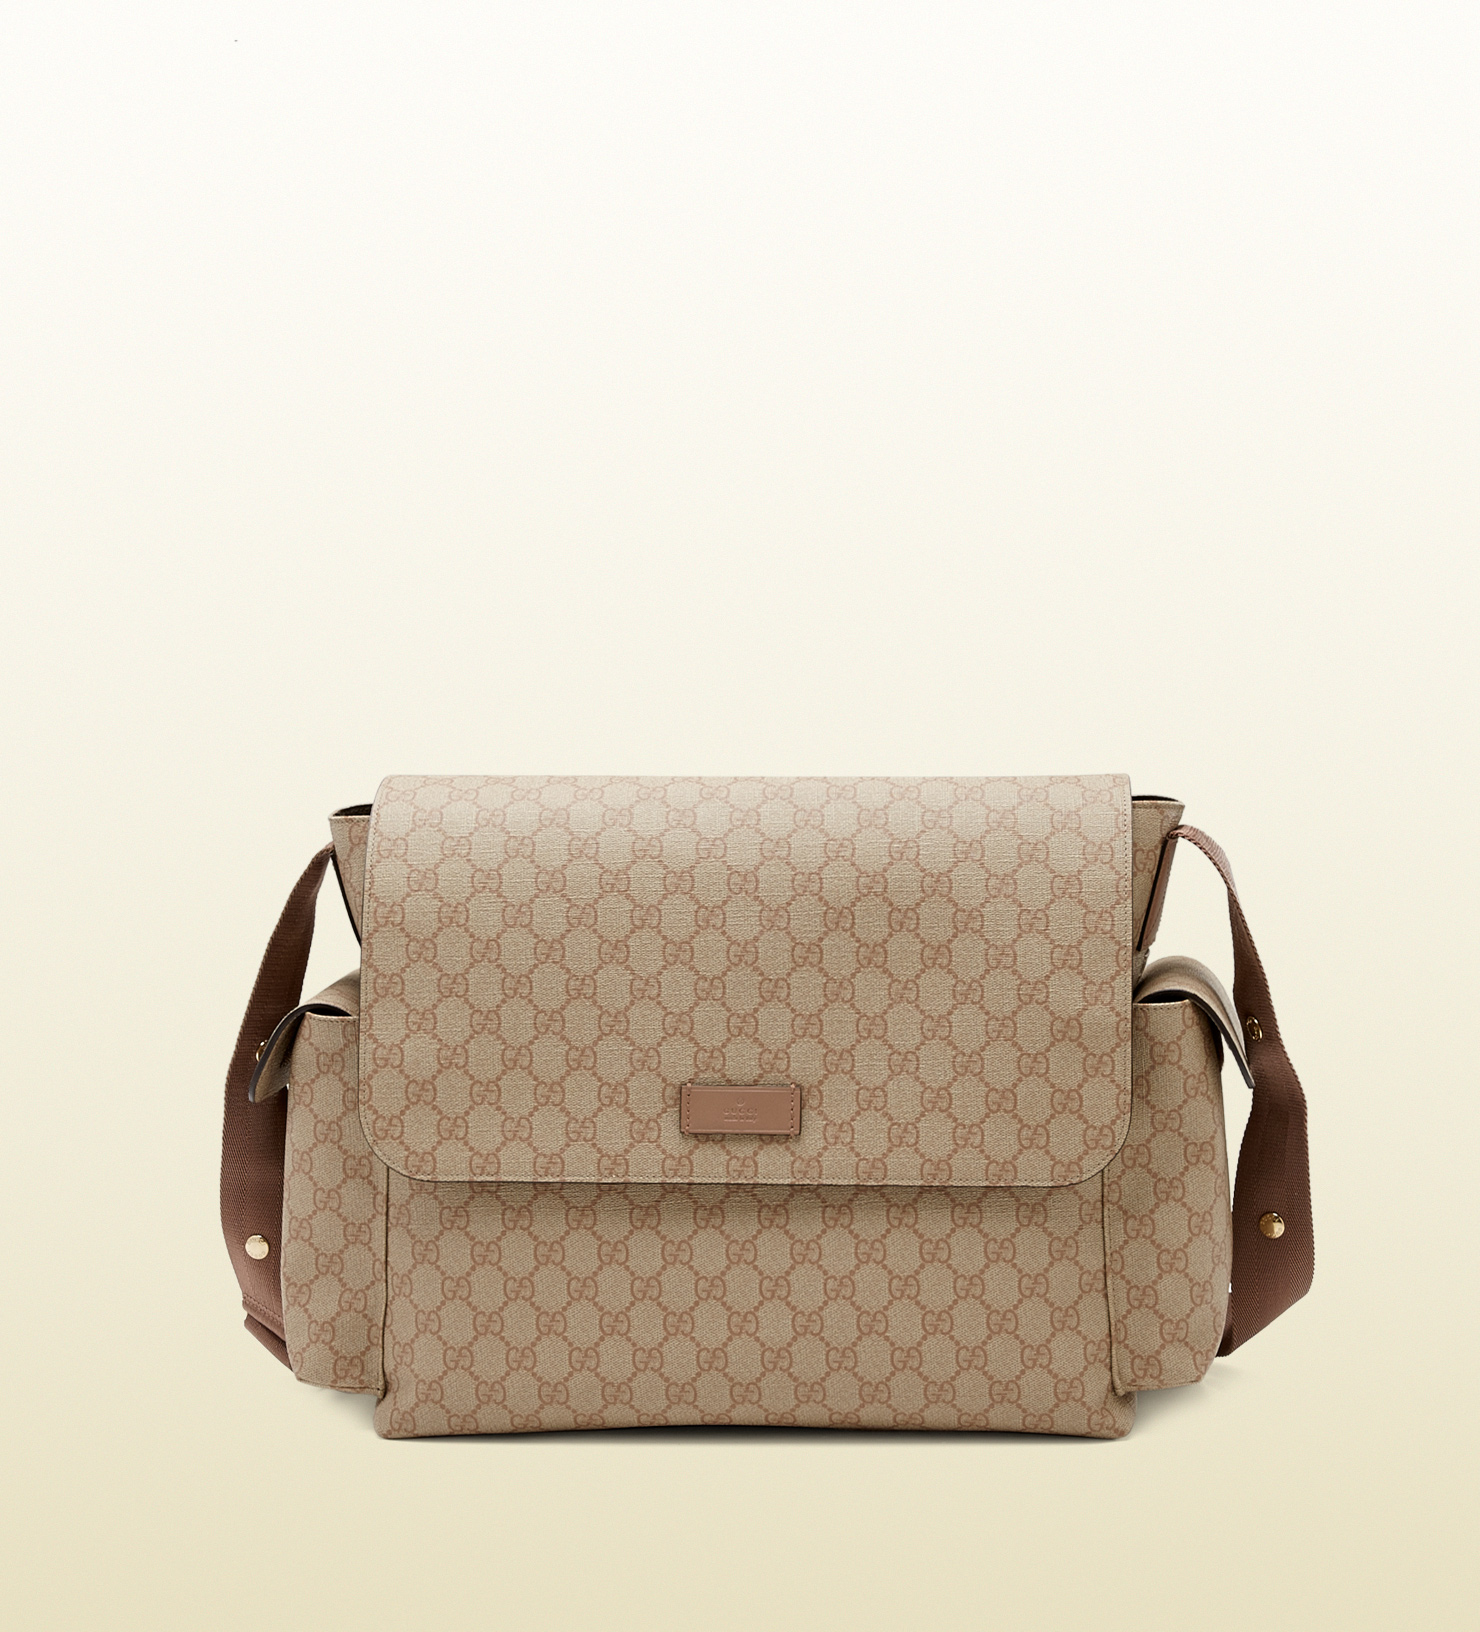 397b687883dc83 Gucci Gg Supreme Canvas Messenger Diaper Bag in Natural for Men - Lyst